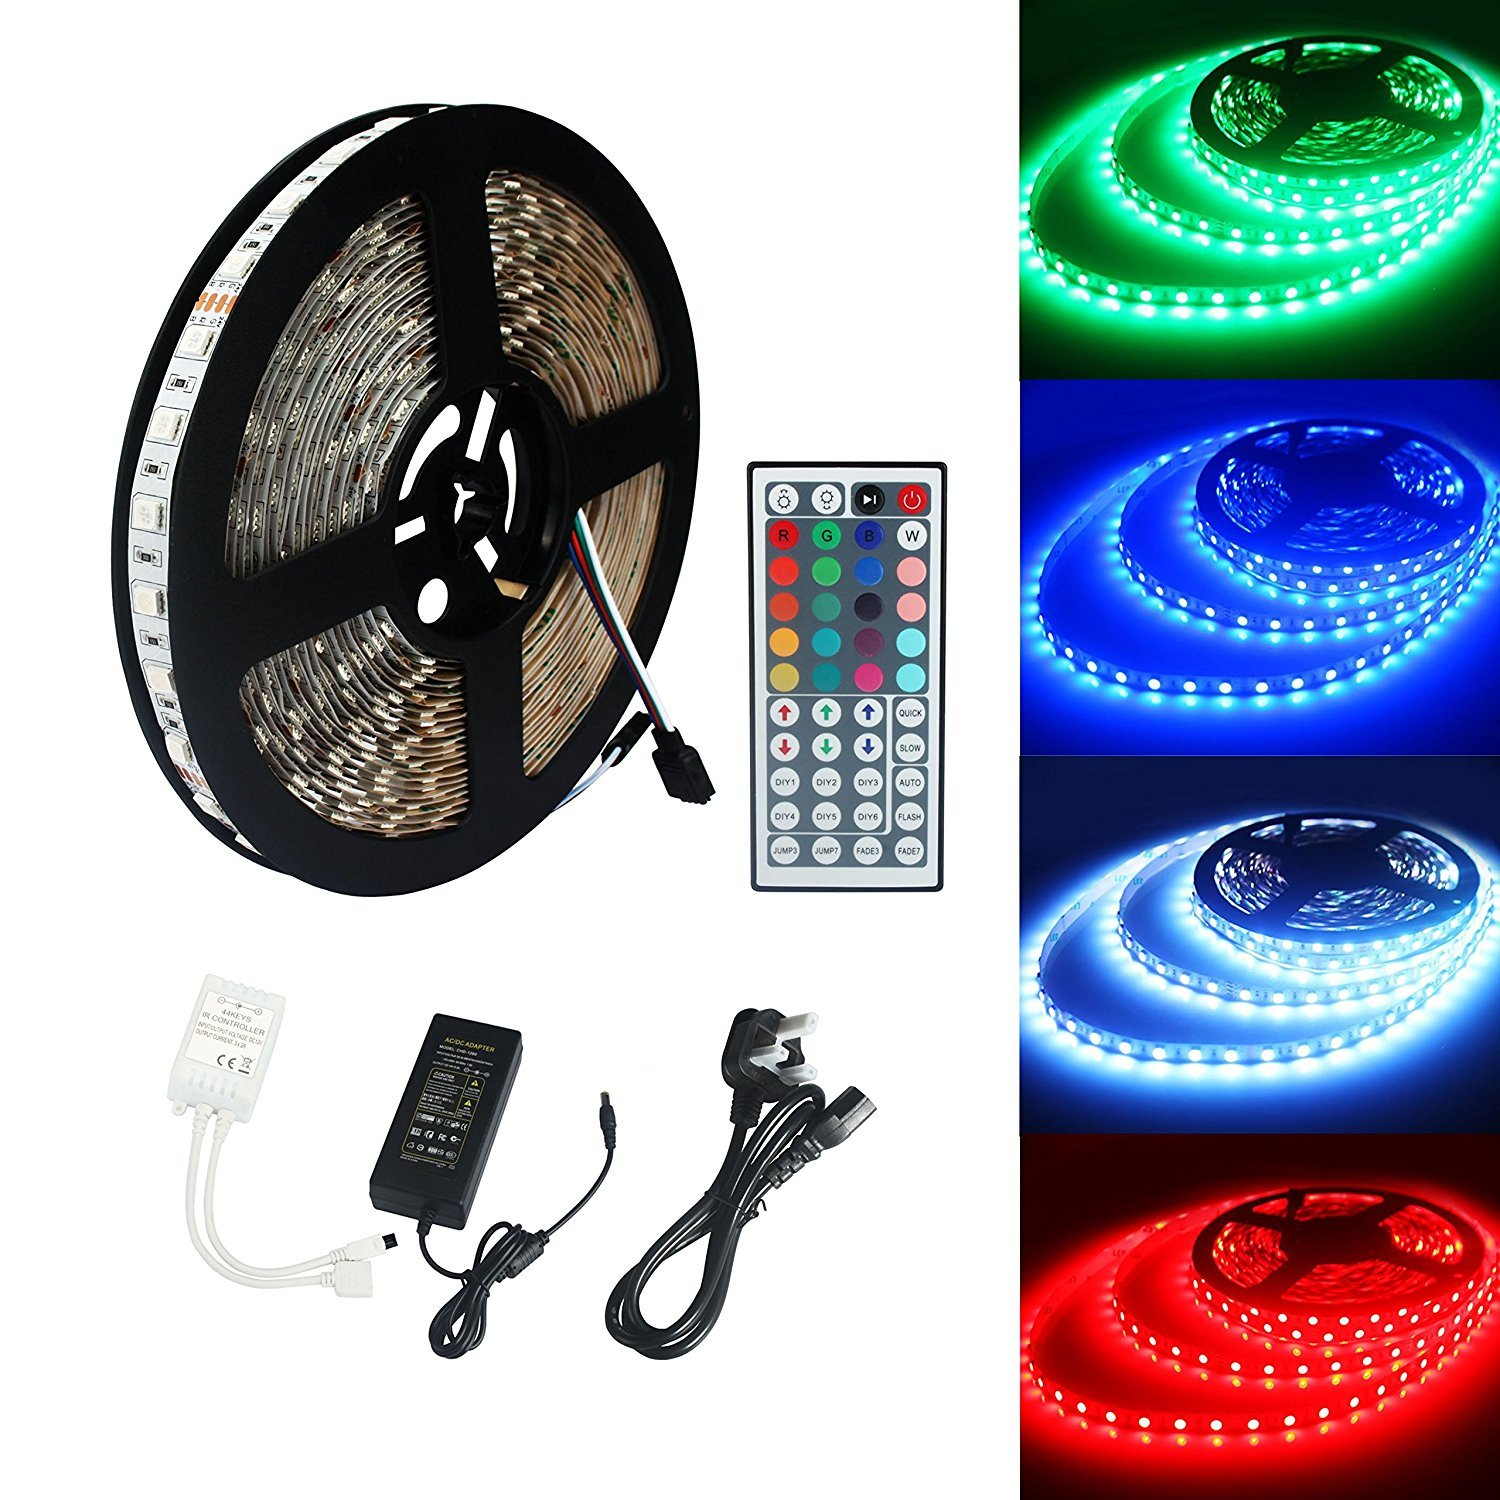 ECOLUX® 10M 5050 RGB 600Led Color Changing Led Strips with 44 key IR Remote+24V 6A AC UK Plug Adapter Power Supply for Home lighting and Kitchen Decorative ALED LIGHT